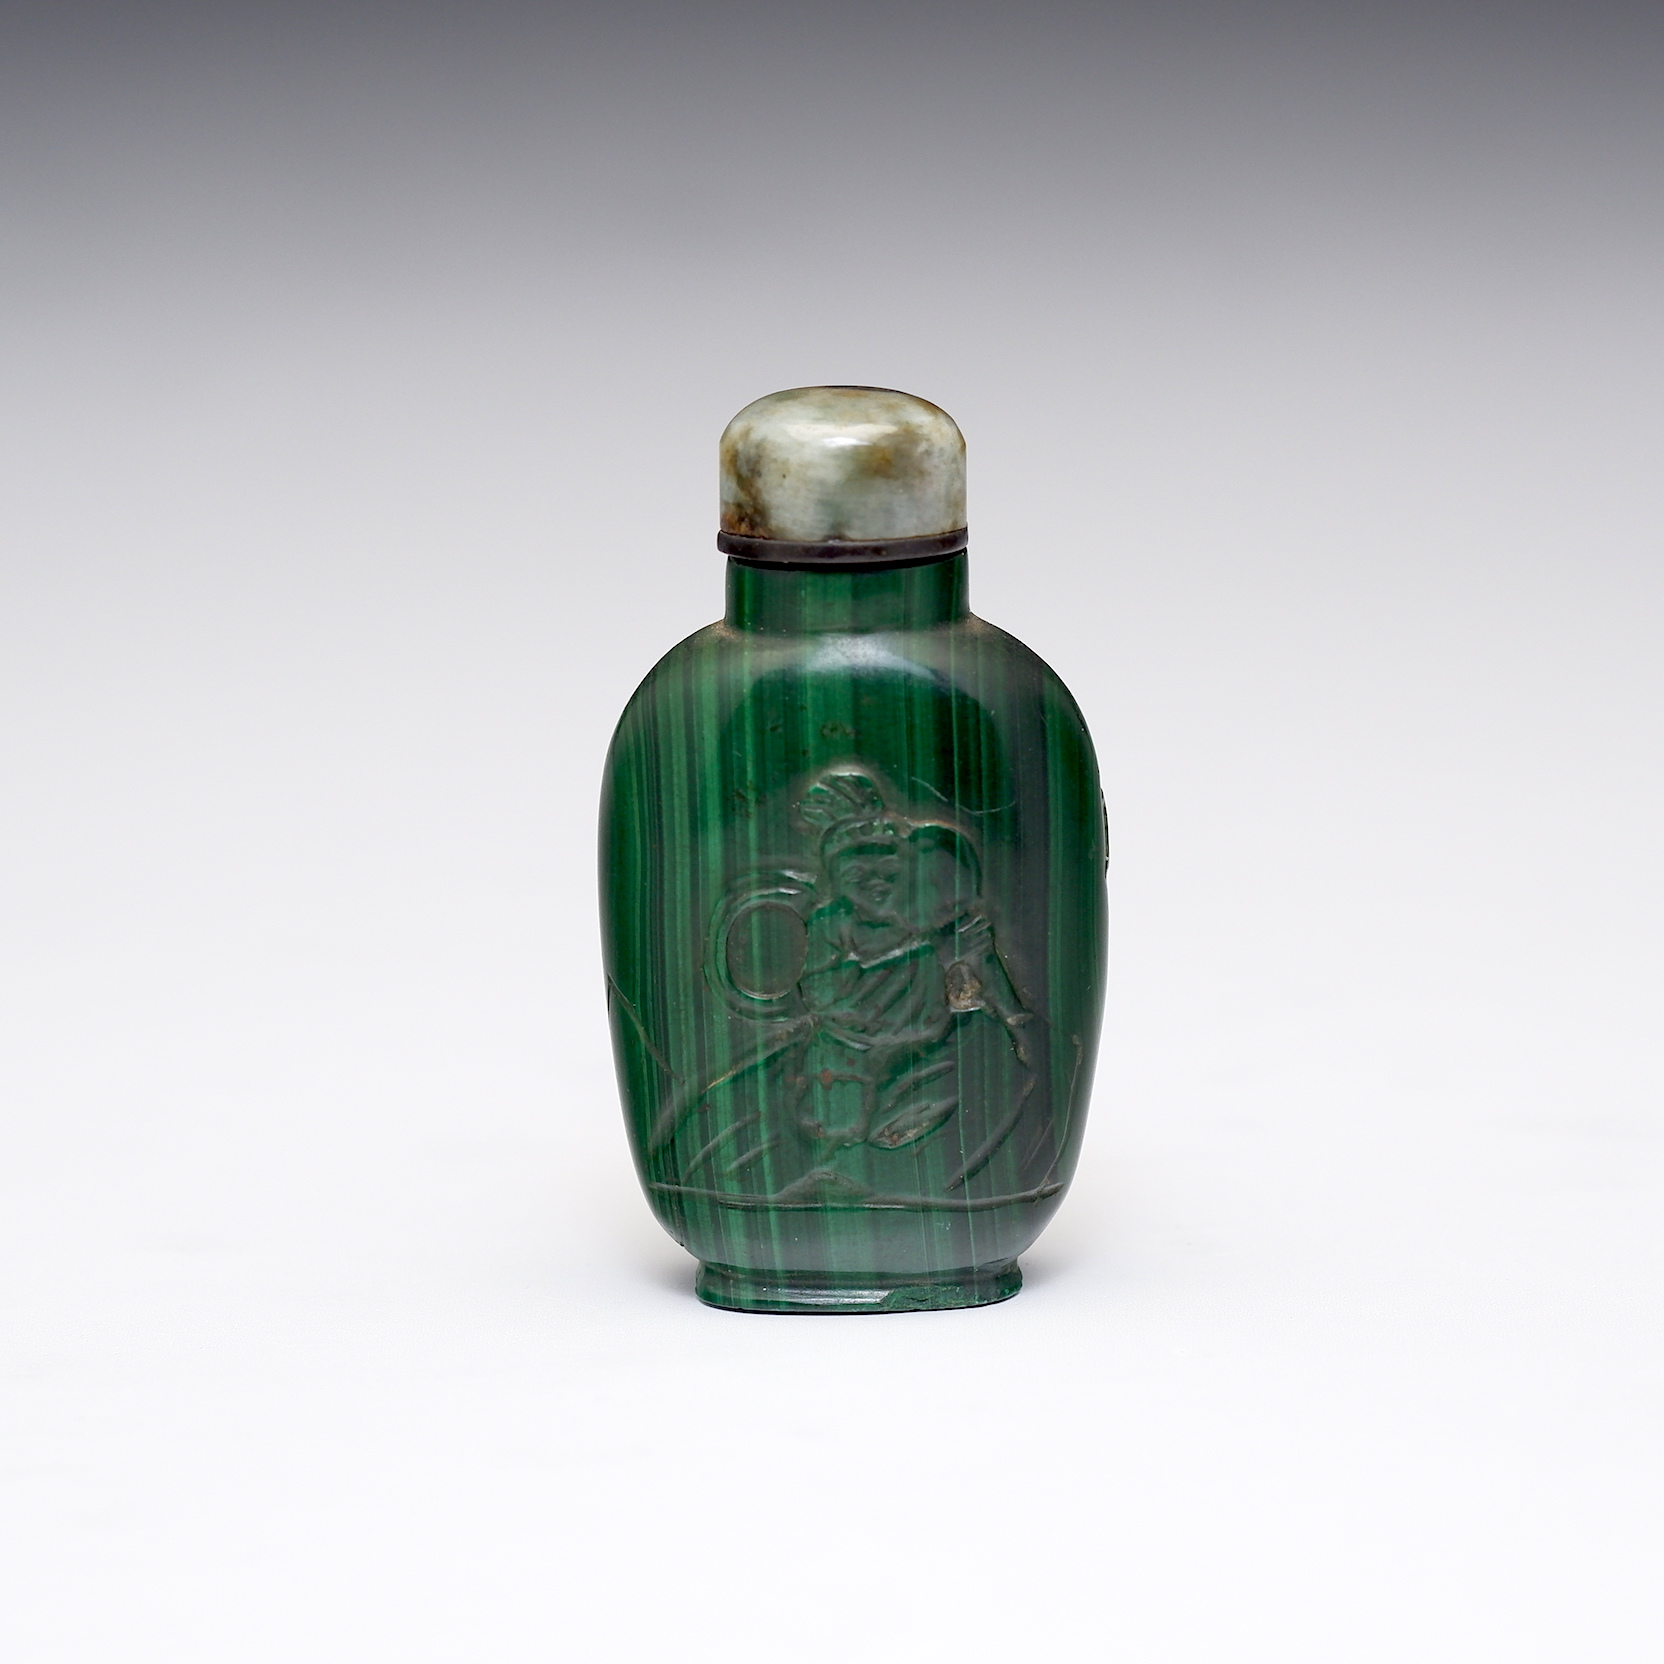 'Antique Chinese Carved Malachite Snuff Bottle with Quartz Stopper'